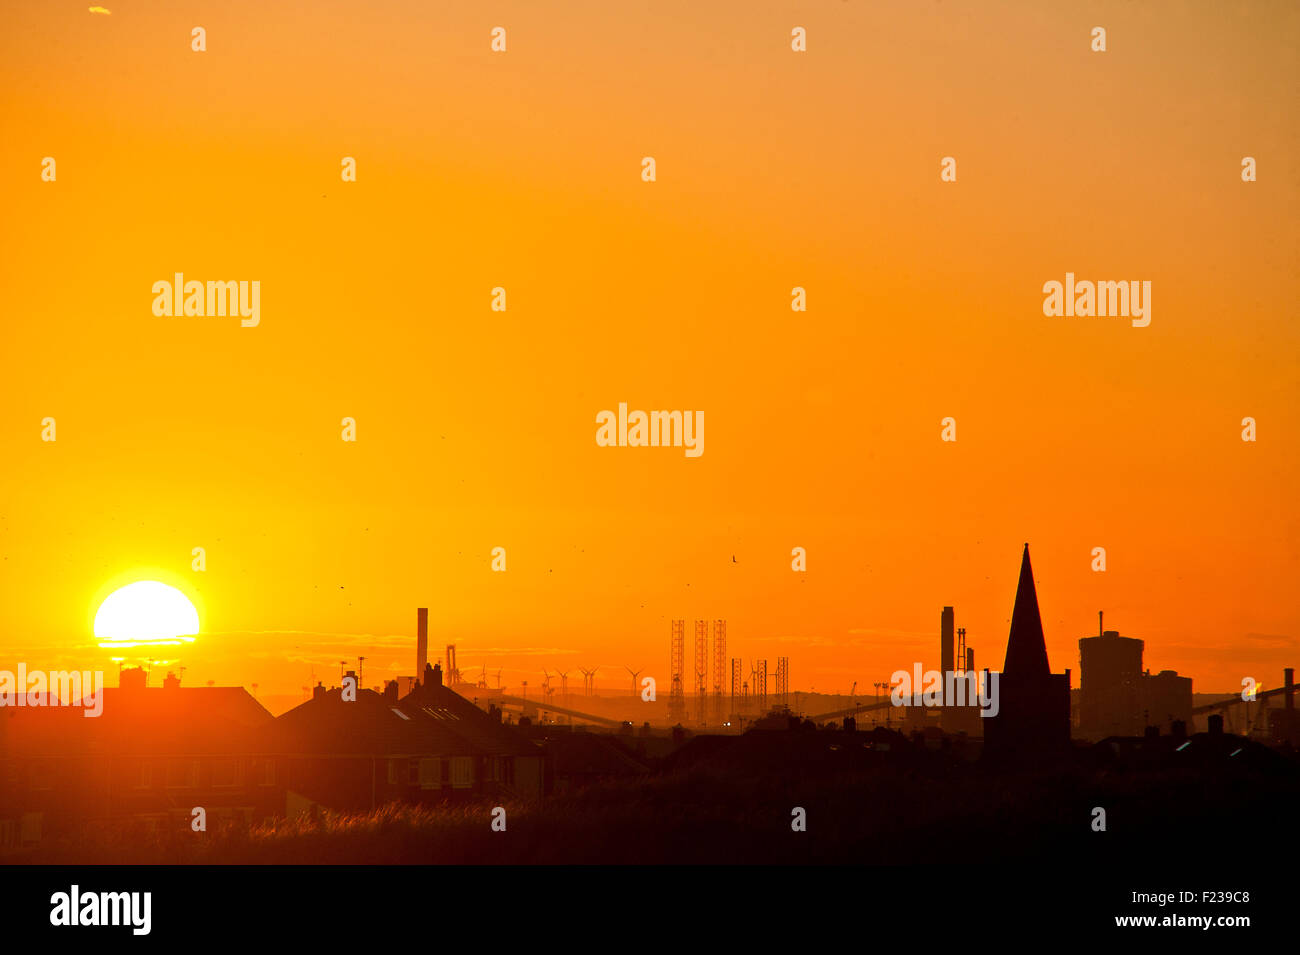 sun sets over Redcar SSI Steelworks industry silouetted against an orange glow - Stock Image